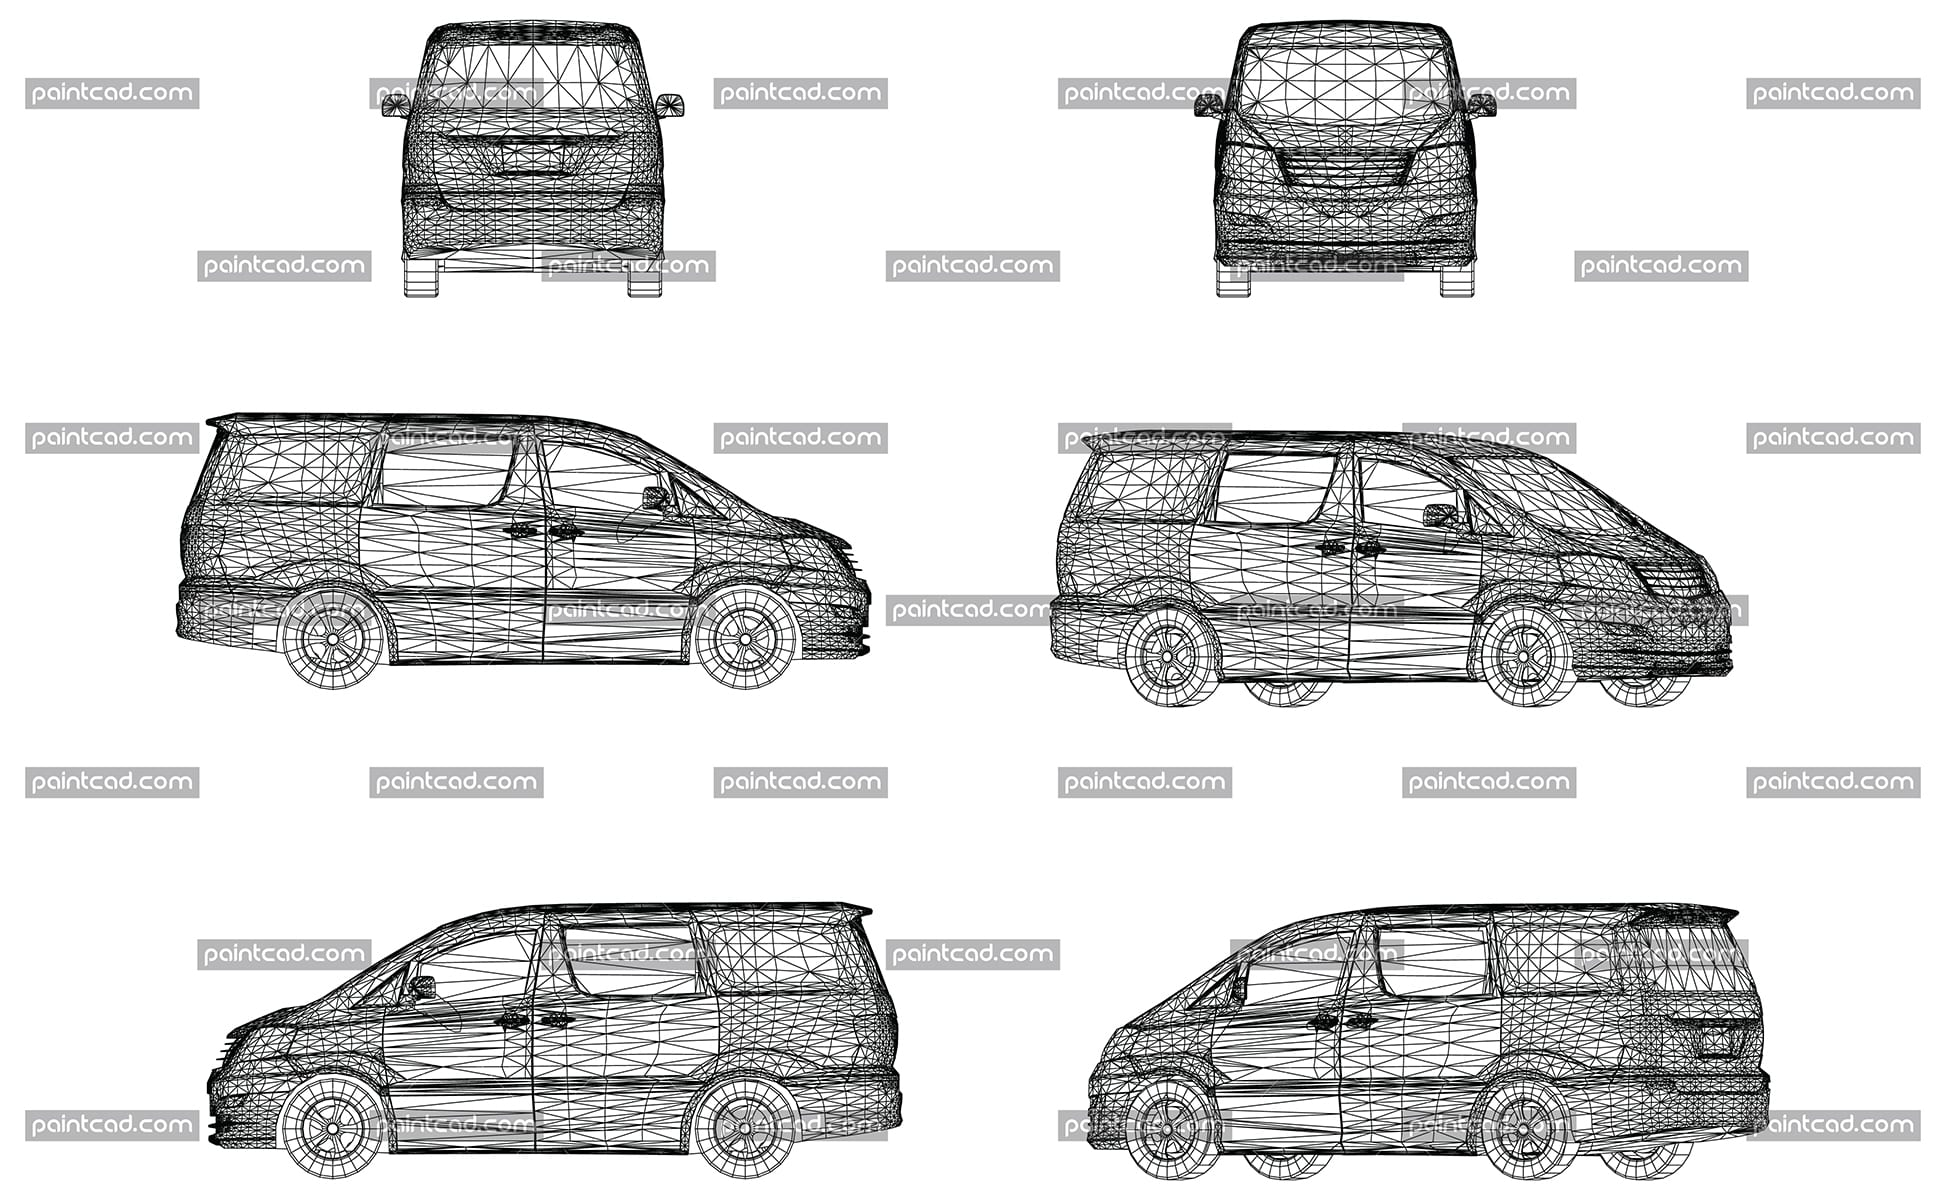 Wireframe design of modern vehicle van - vector illustration